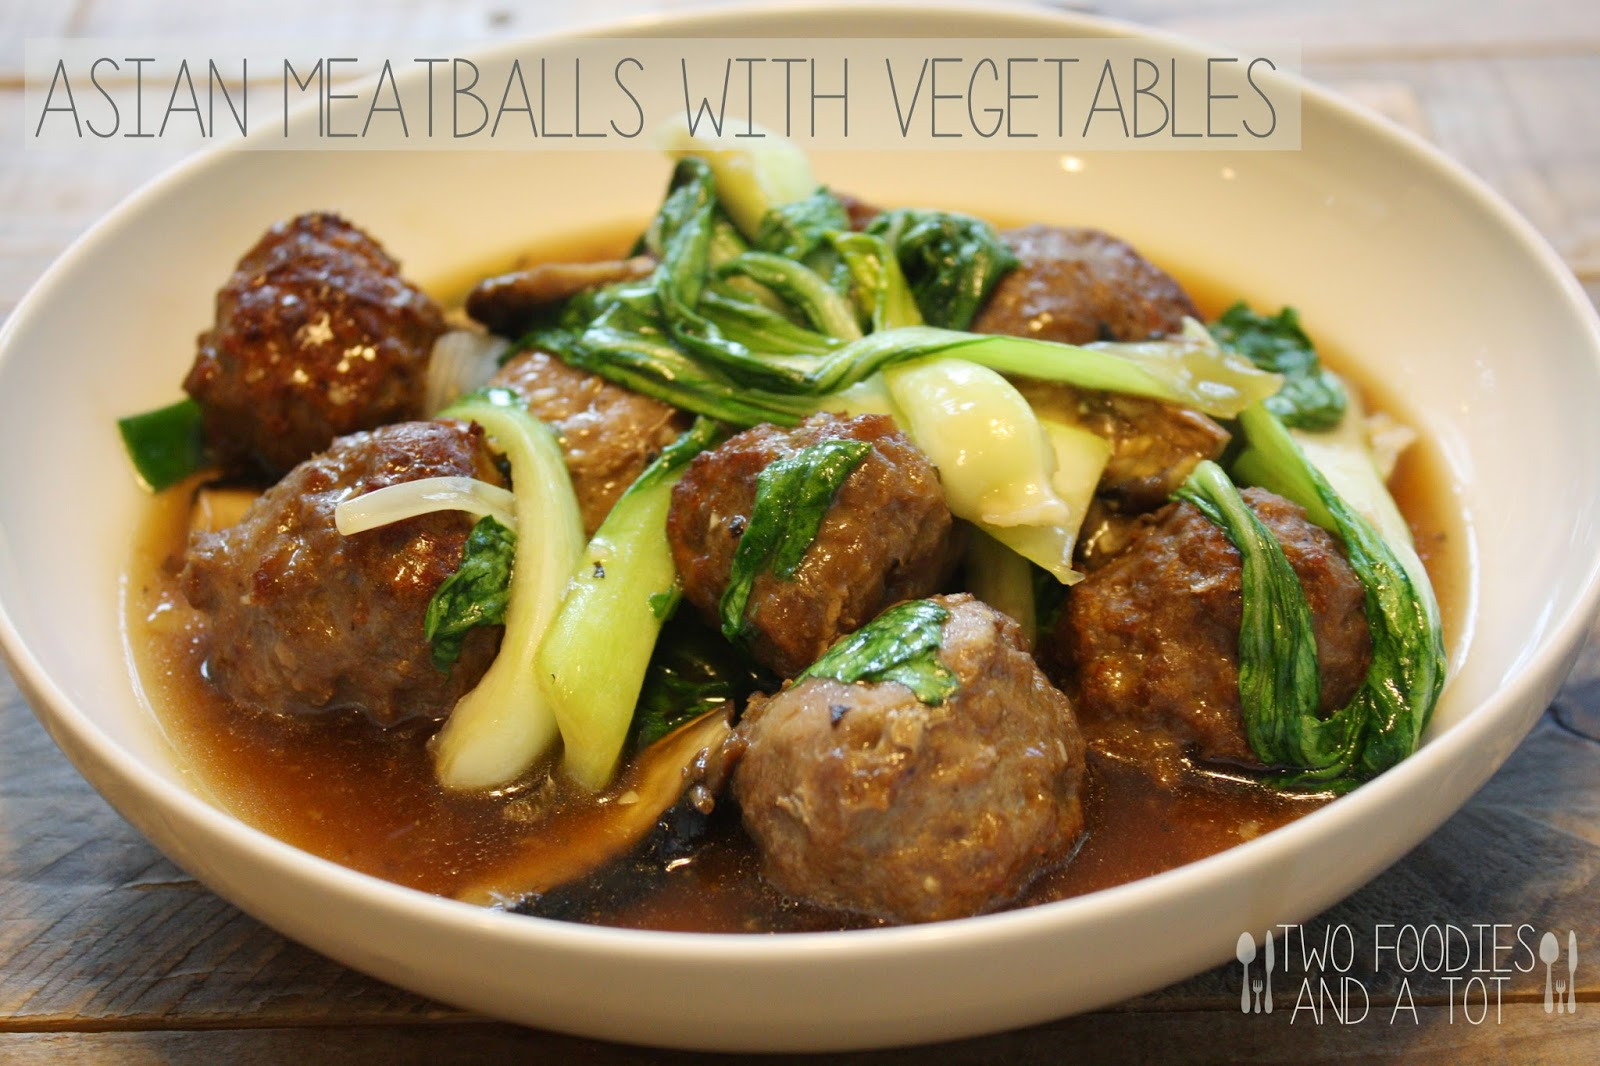 Two foodies and a tot: Asian meatballs with vegetables